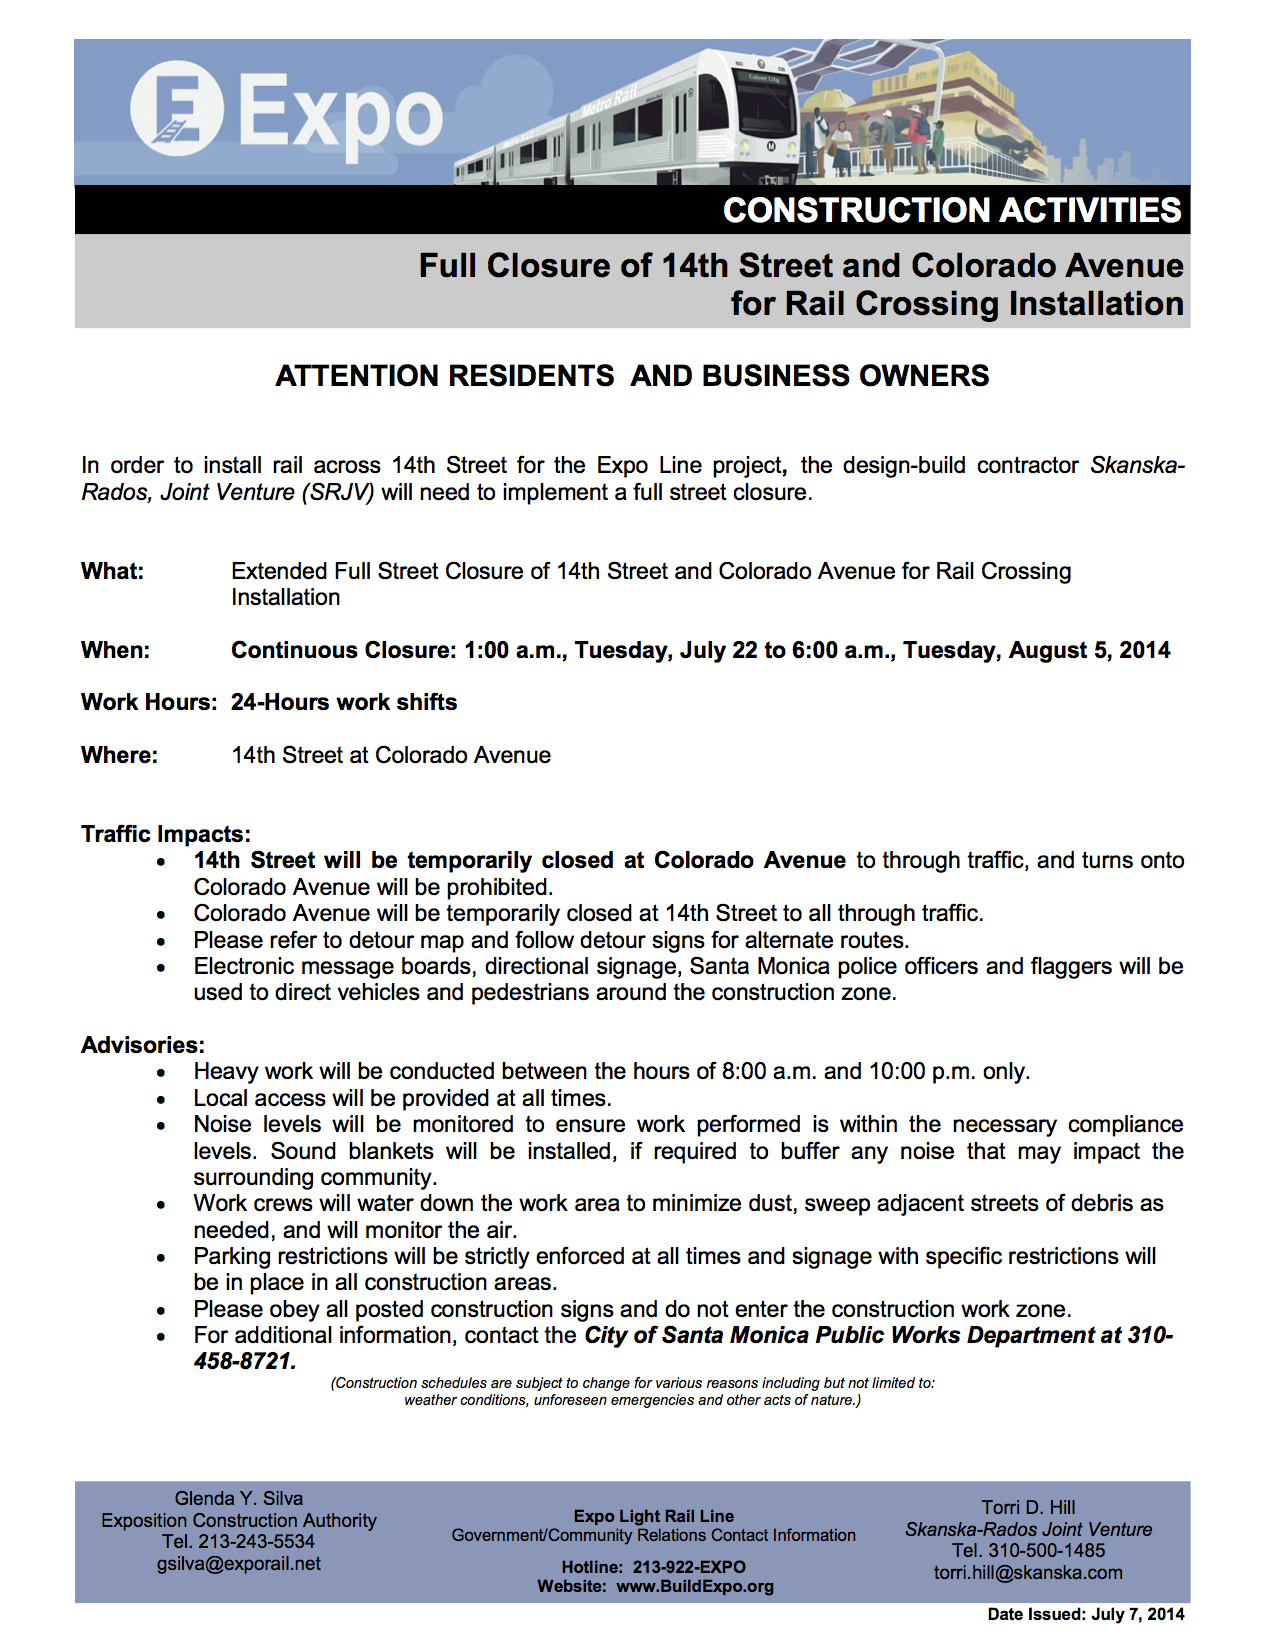 070714-EXPO-P2-CONSTRUCTION-NOTICE-Track-Installation-14th-Street-